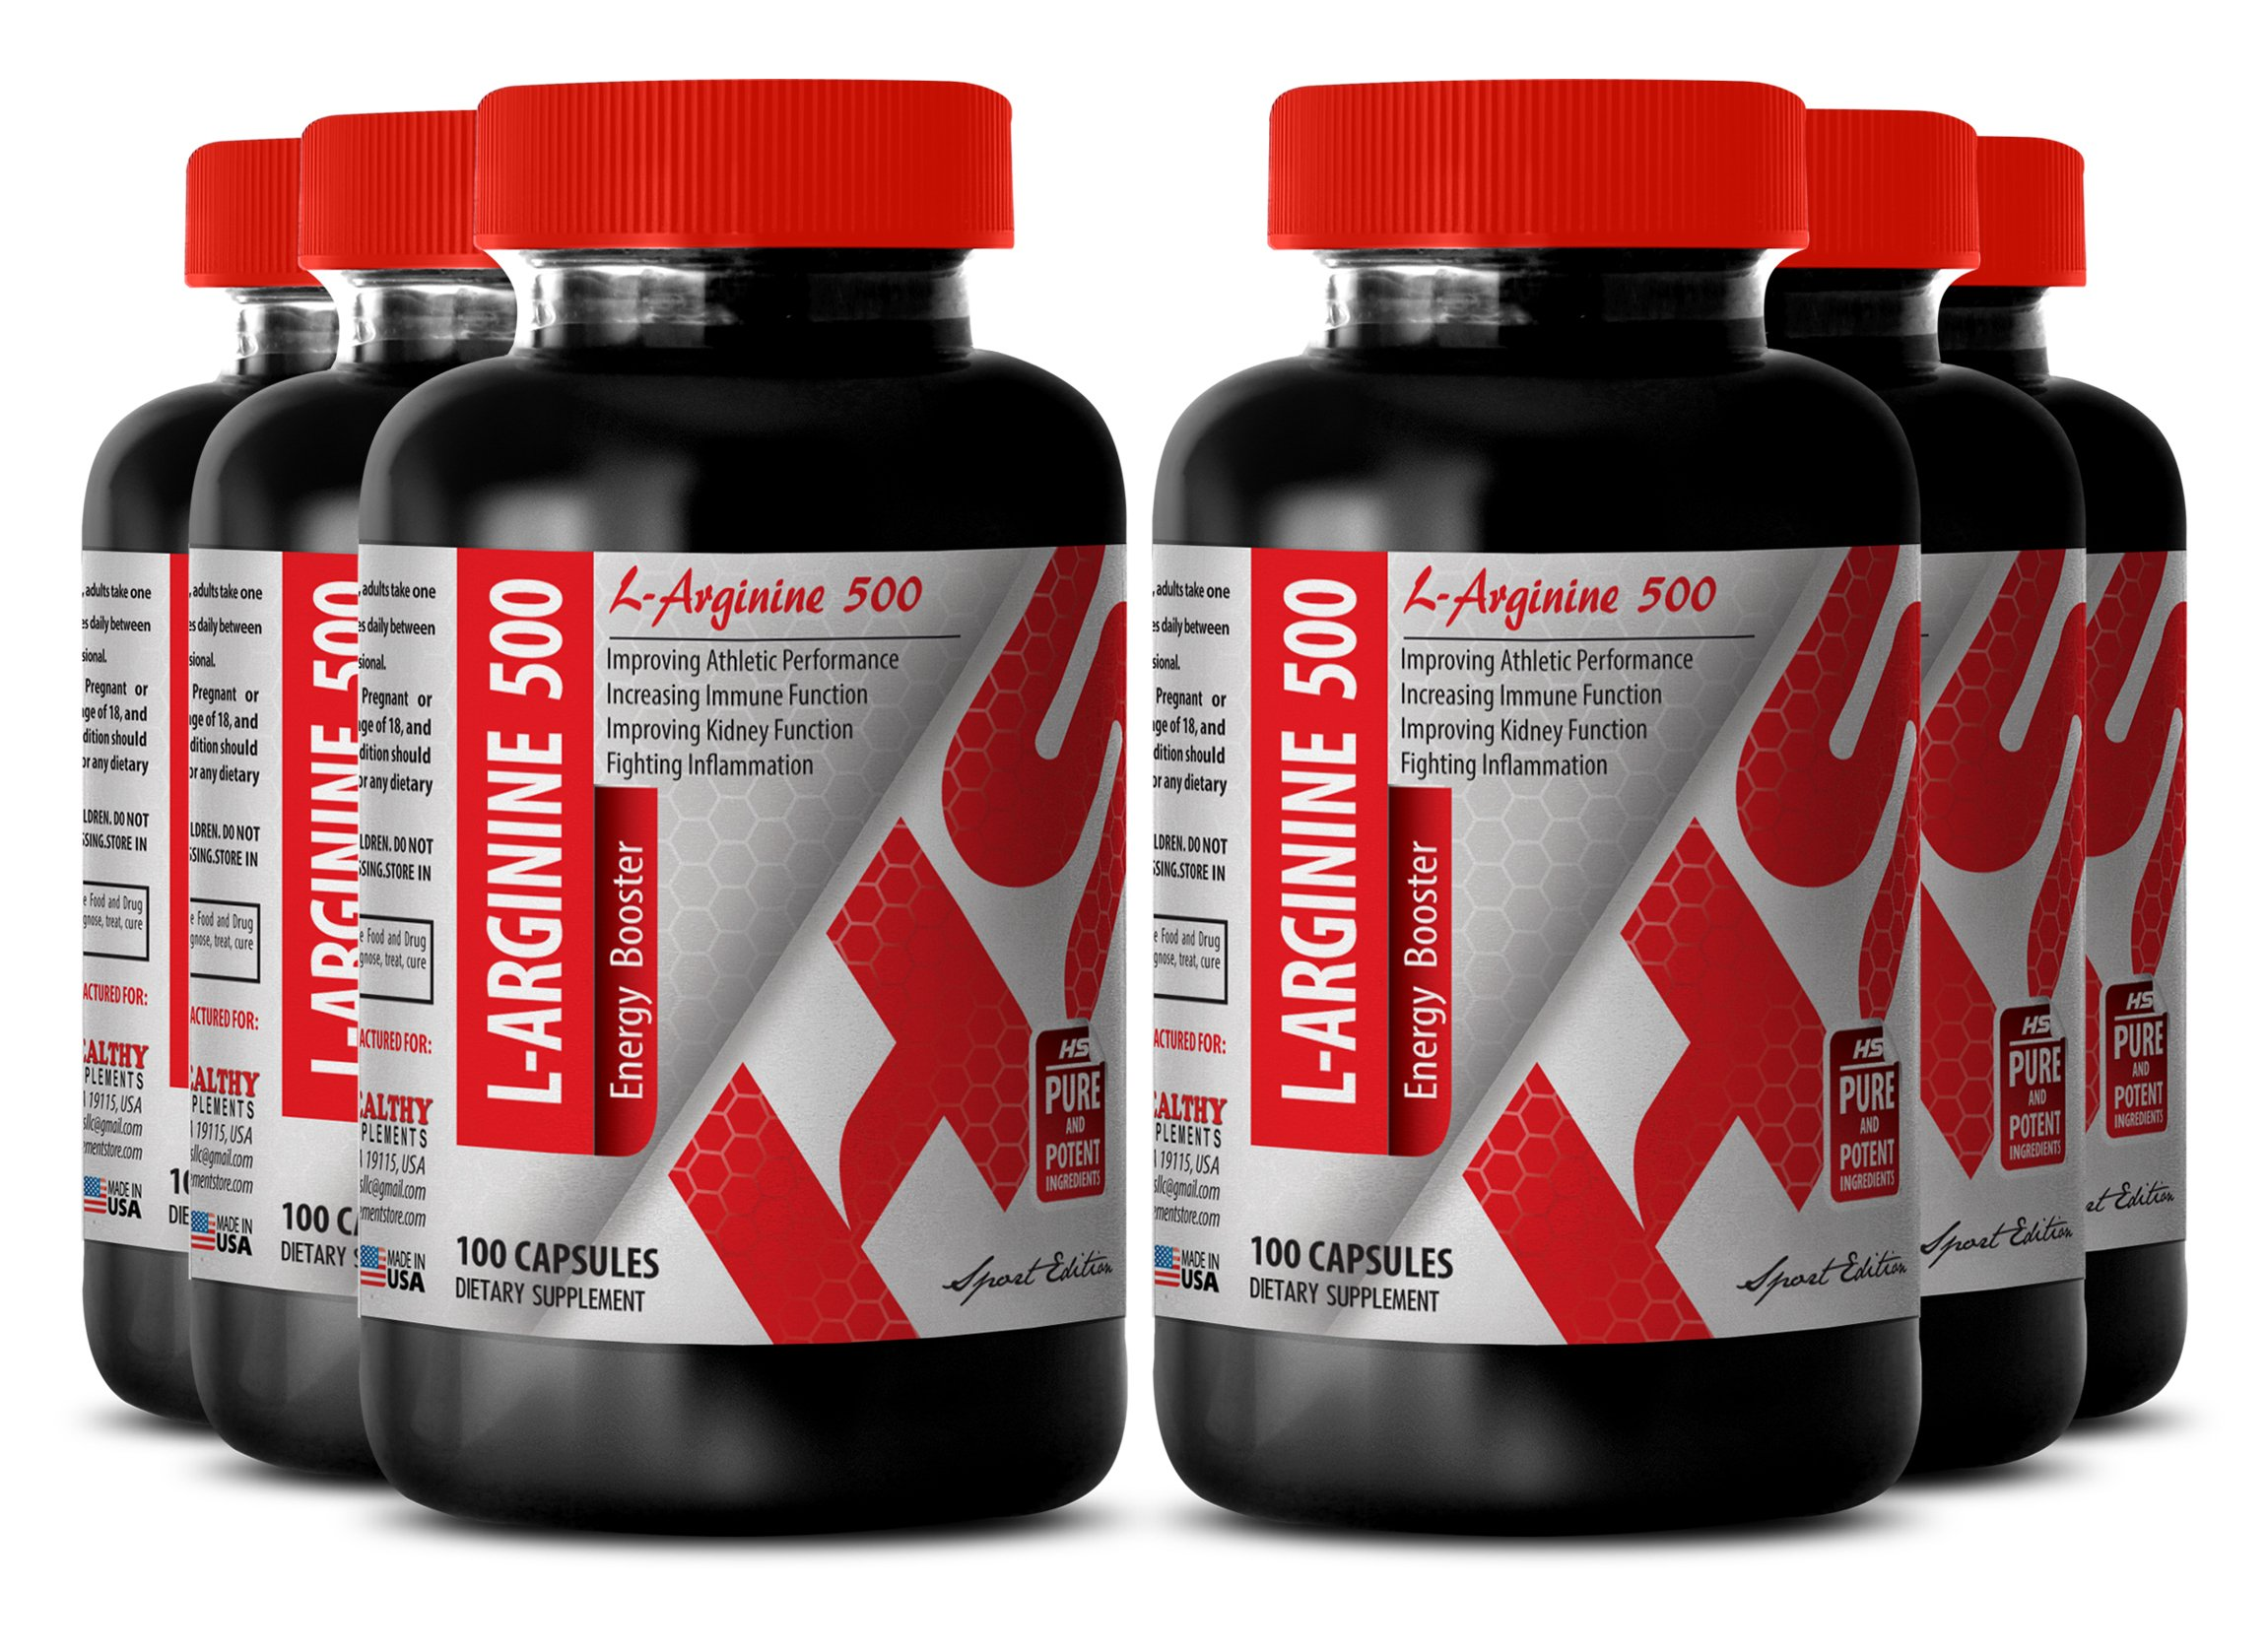 Arginine powder 500mg - L - ARGININE ENERGY BOOSTER 500 MG - improve sexual performance (6 Bottles)